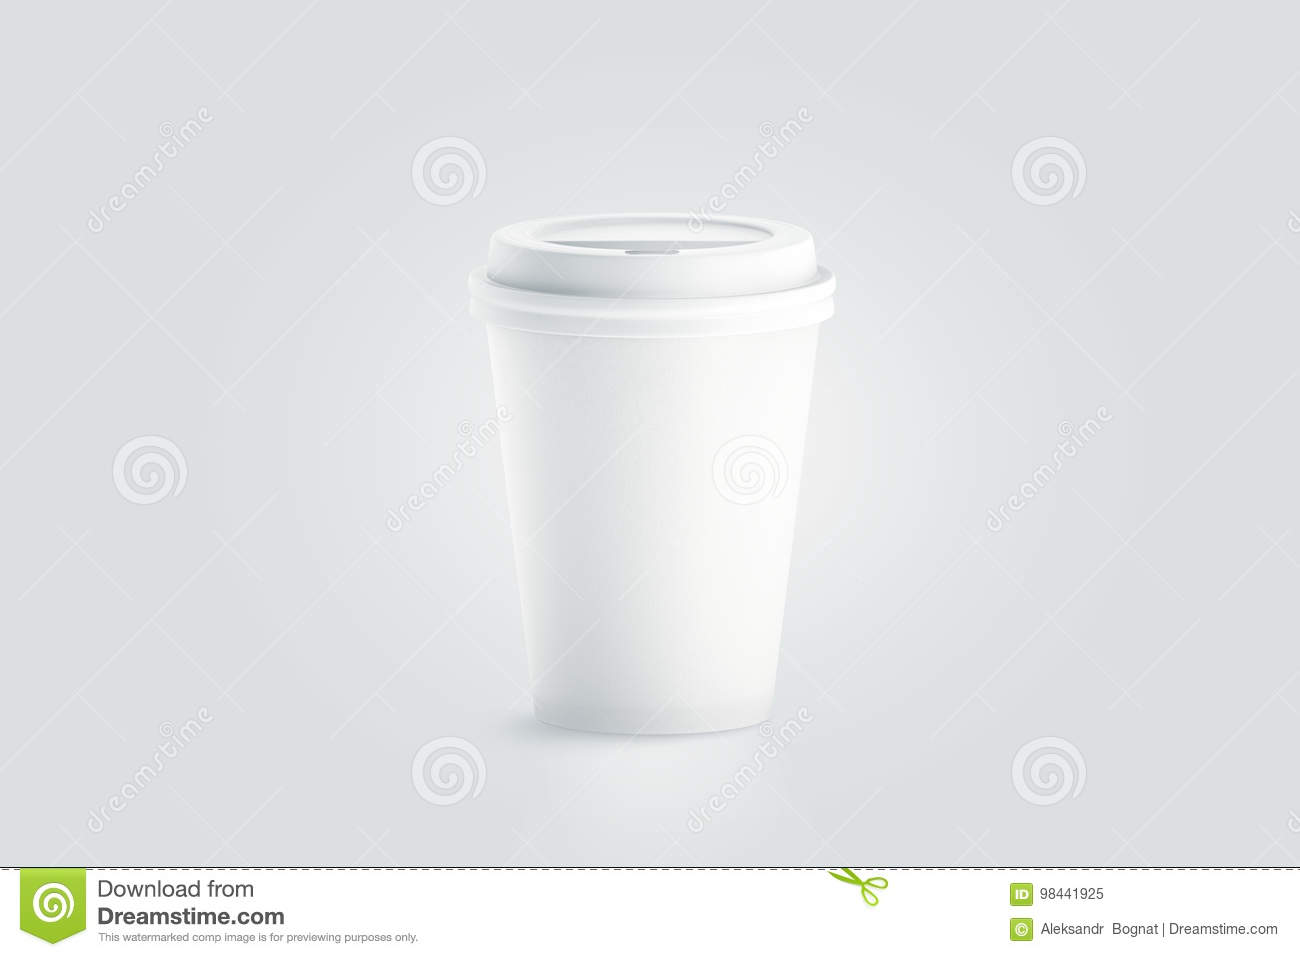 Blank White Disposable Paper Cup With Plastic Lid Mock Up Stock